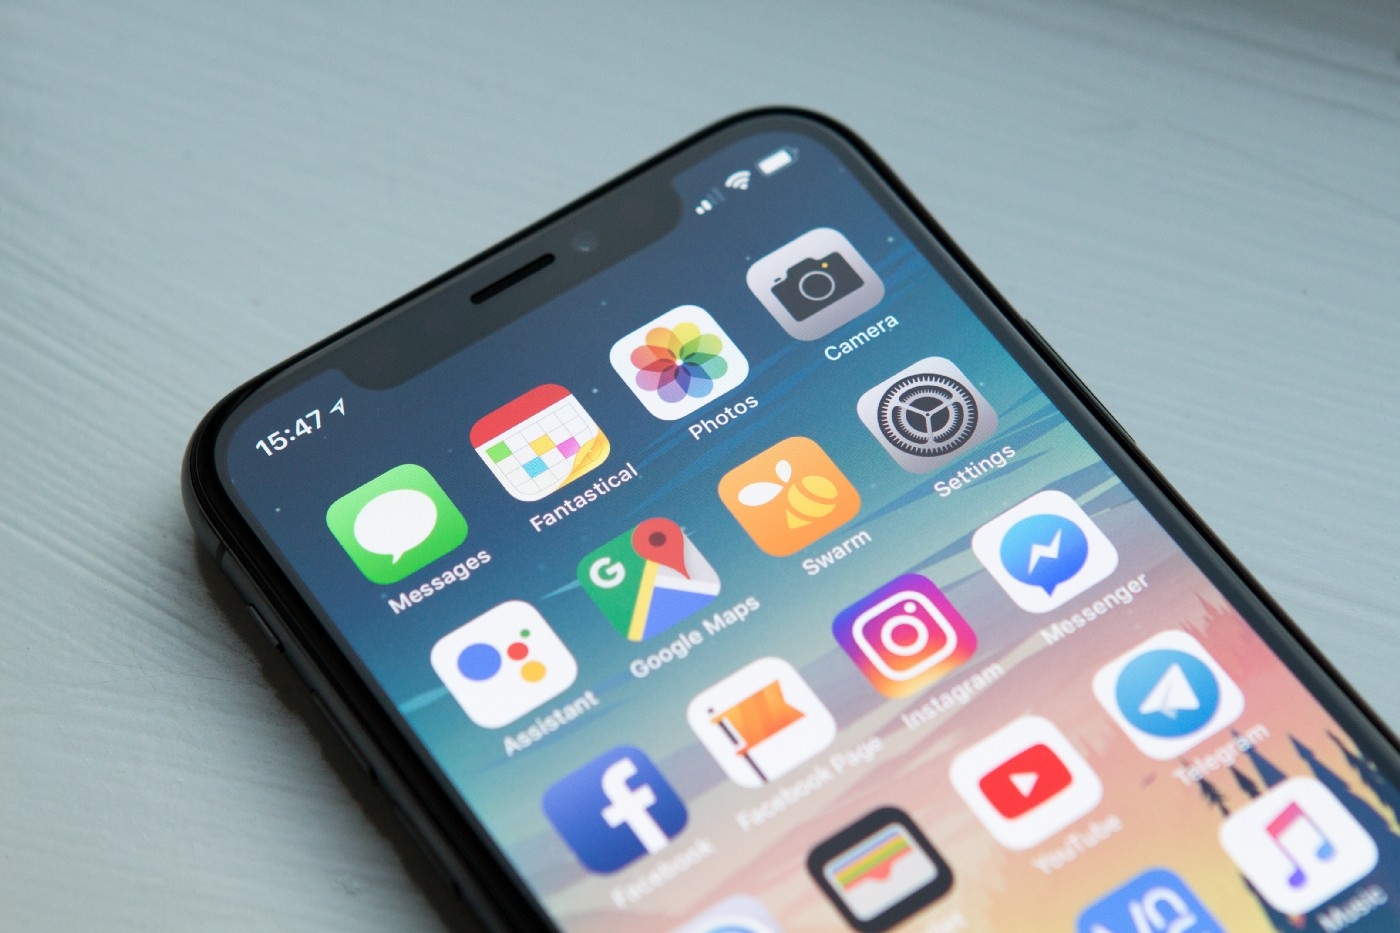 Should I learn to make apps on iOS or Android?